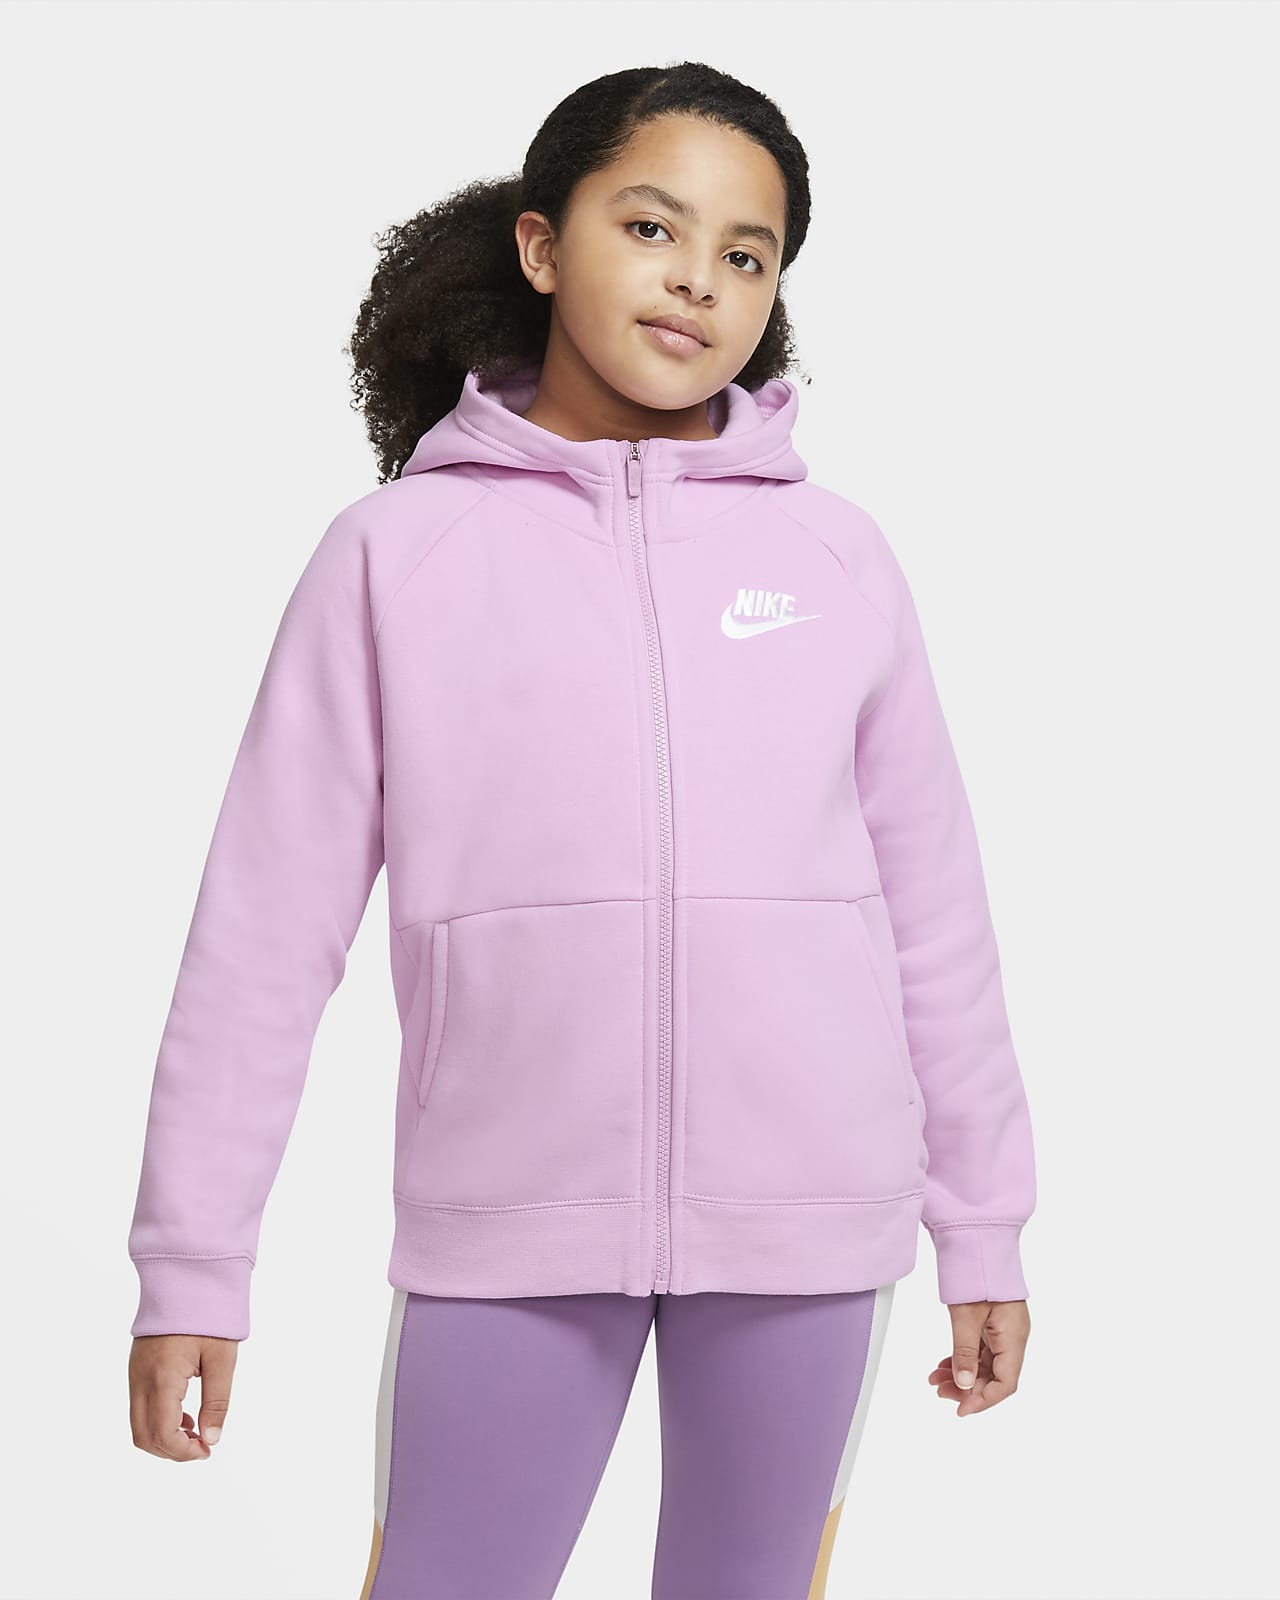 Nike Sportswear Big Kids' (Girls') Full-Zip Hoodie (Extended Size)